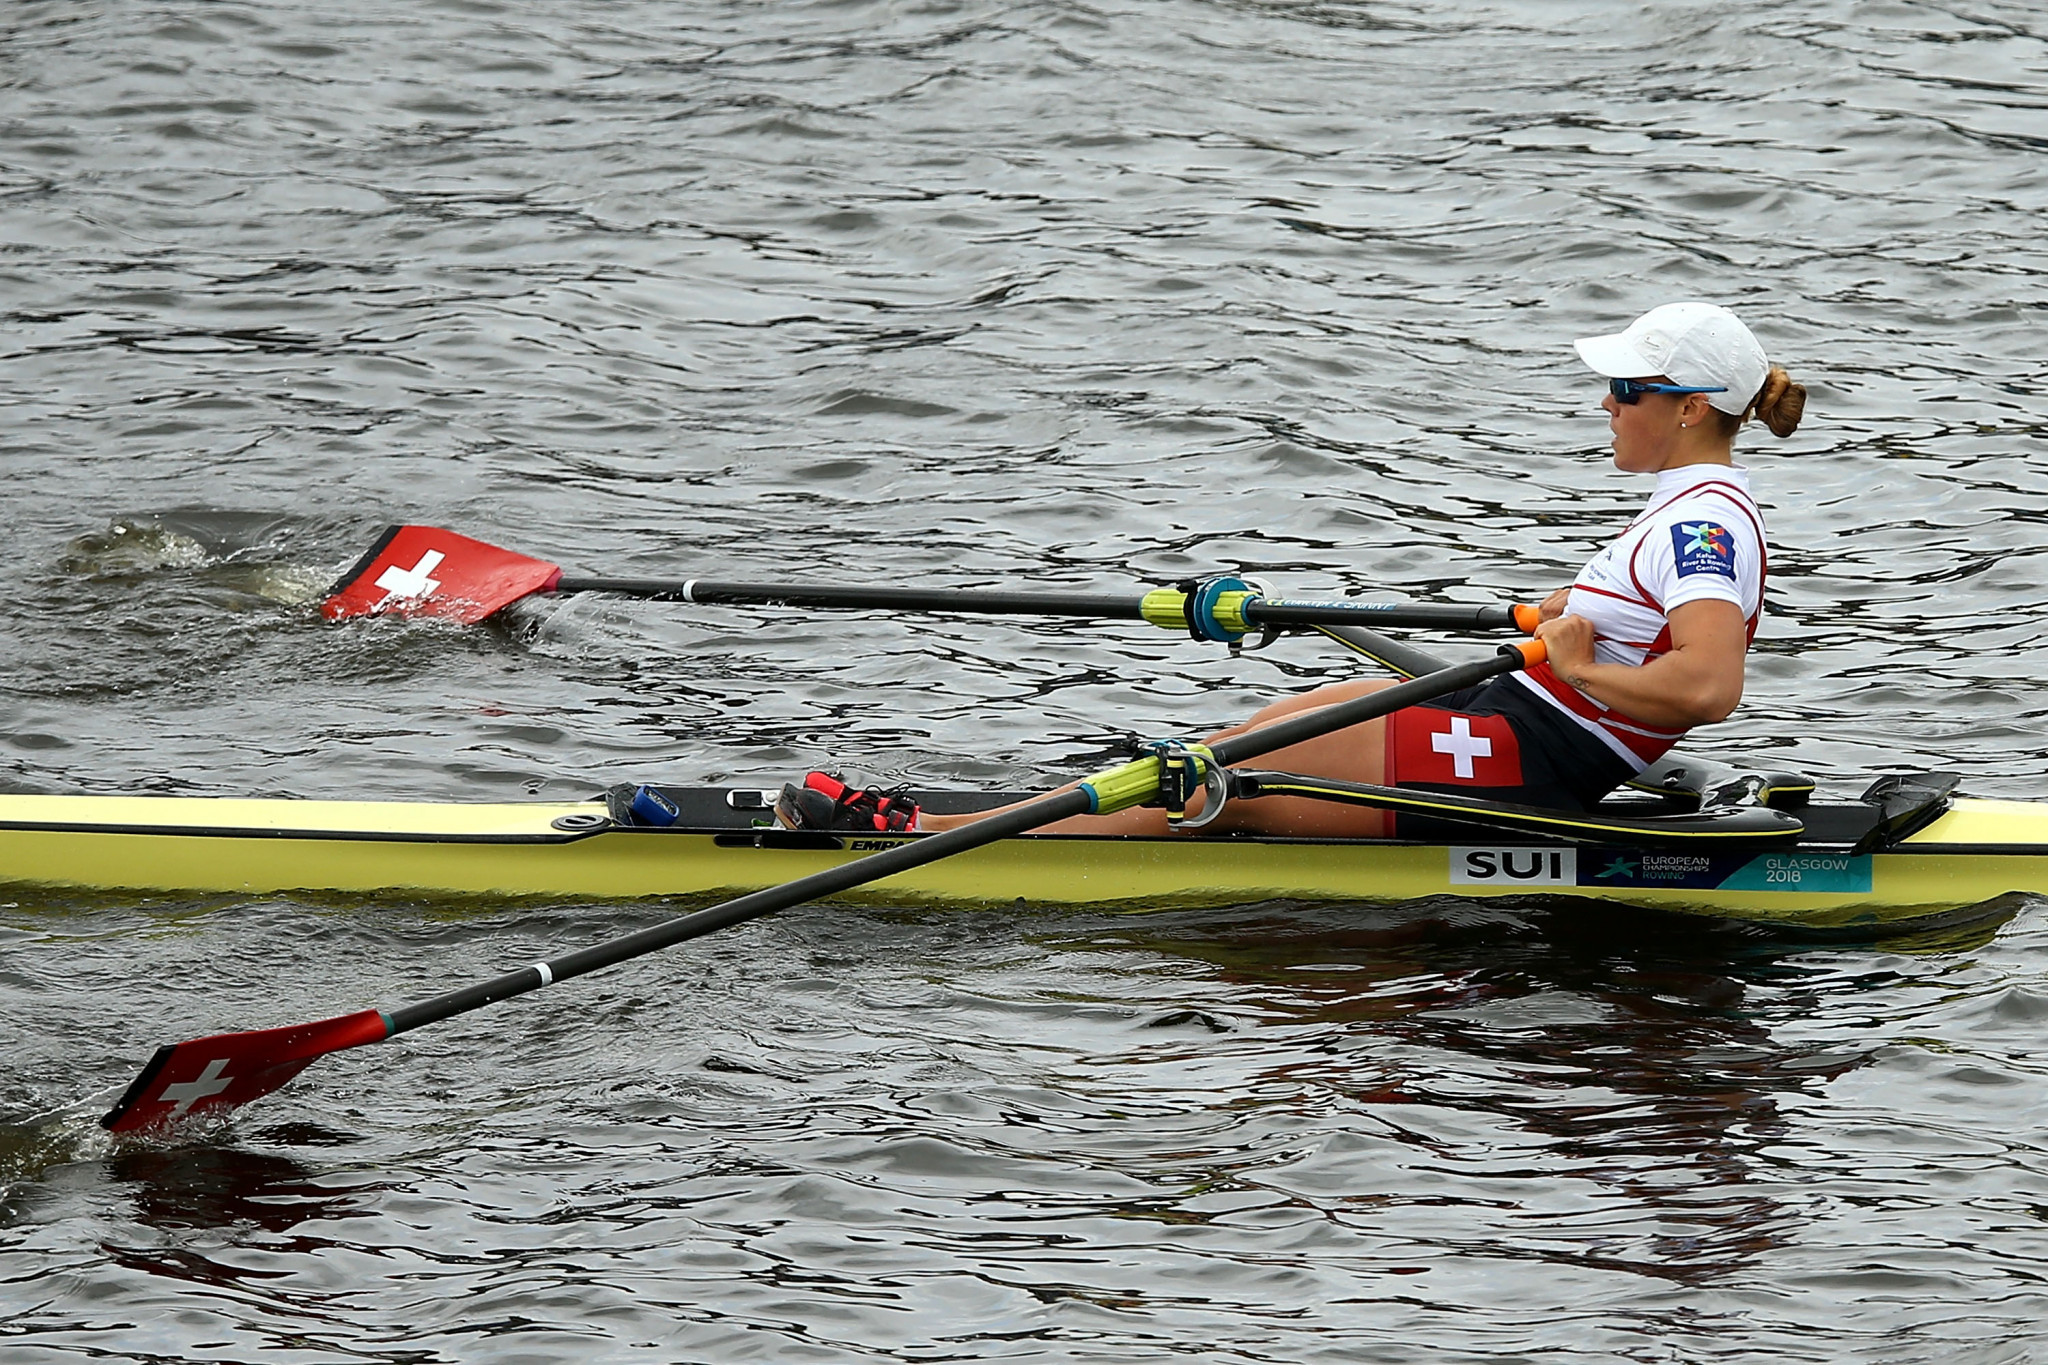 World champion Jeannine Gmelin won the women's single sculls competition ©Getty Images